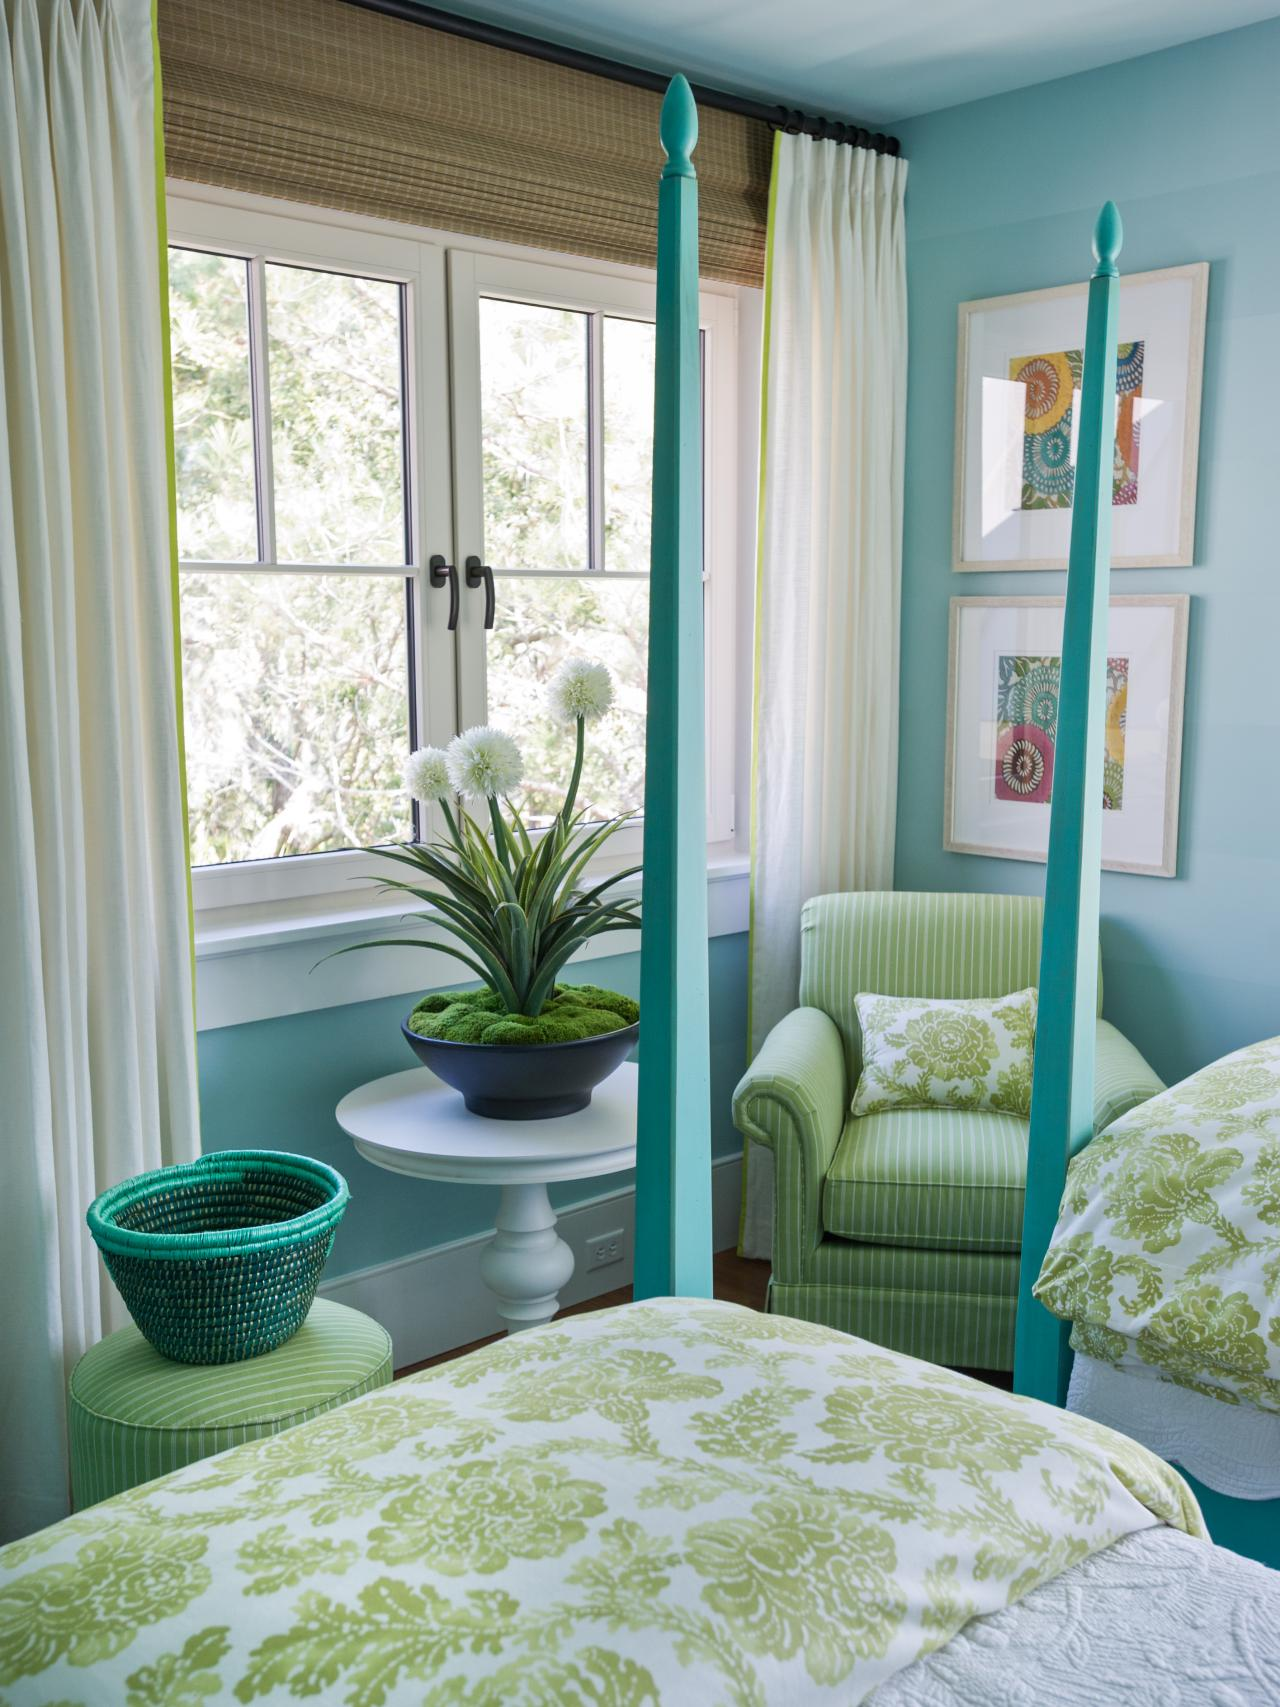 Blues Greens My Favorite Color Combo Addicted 2 Decorating